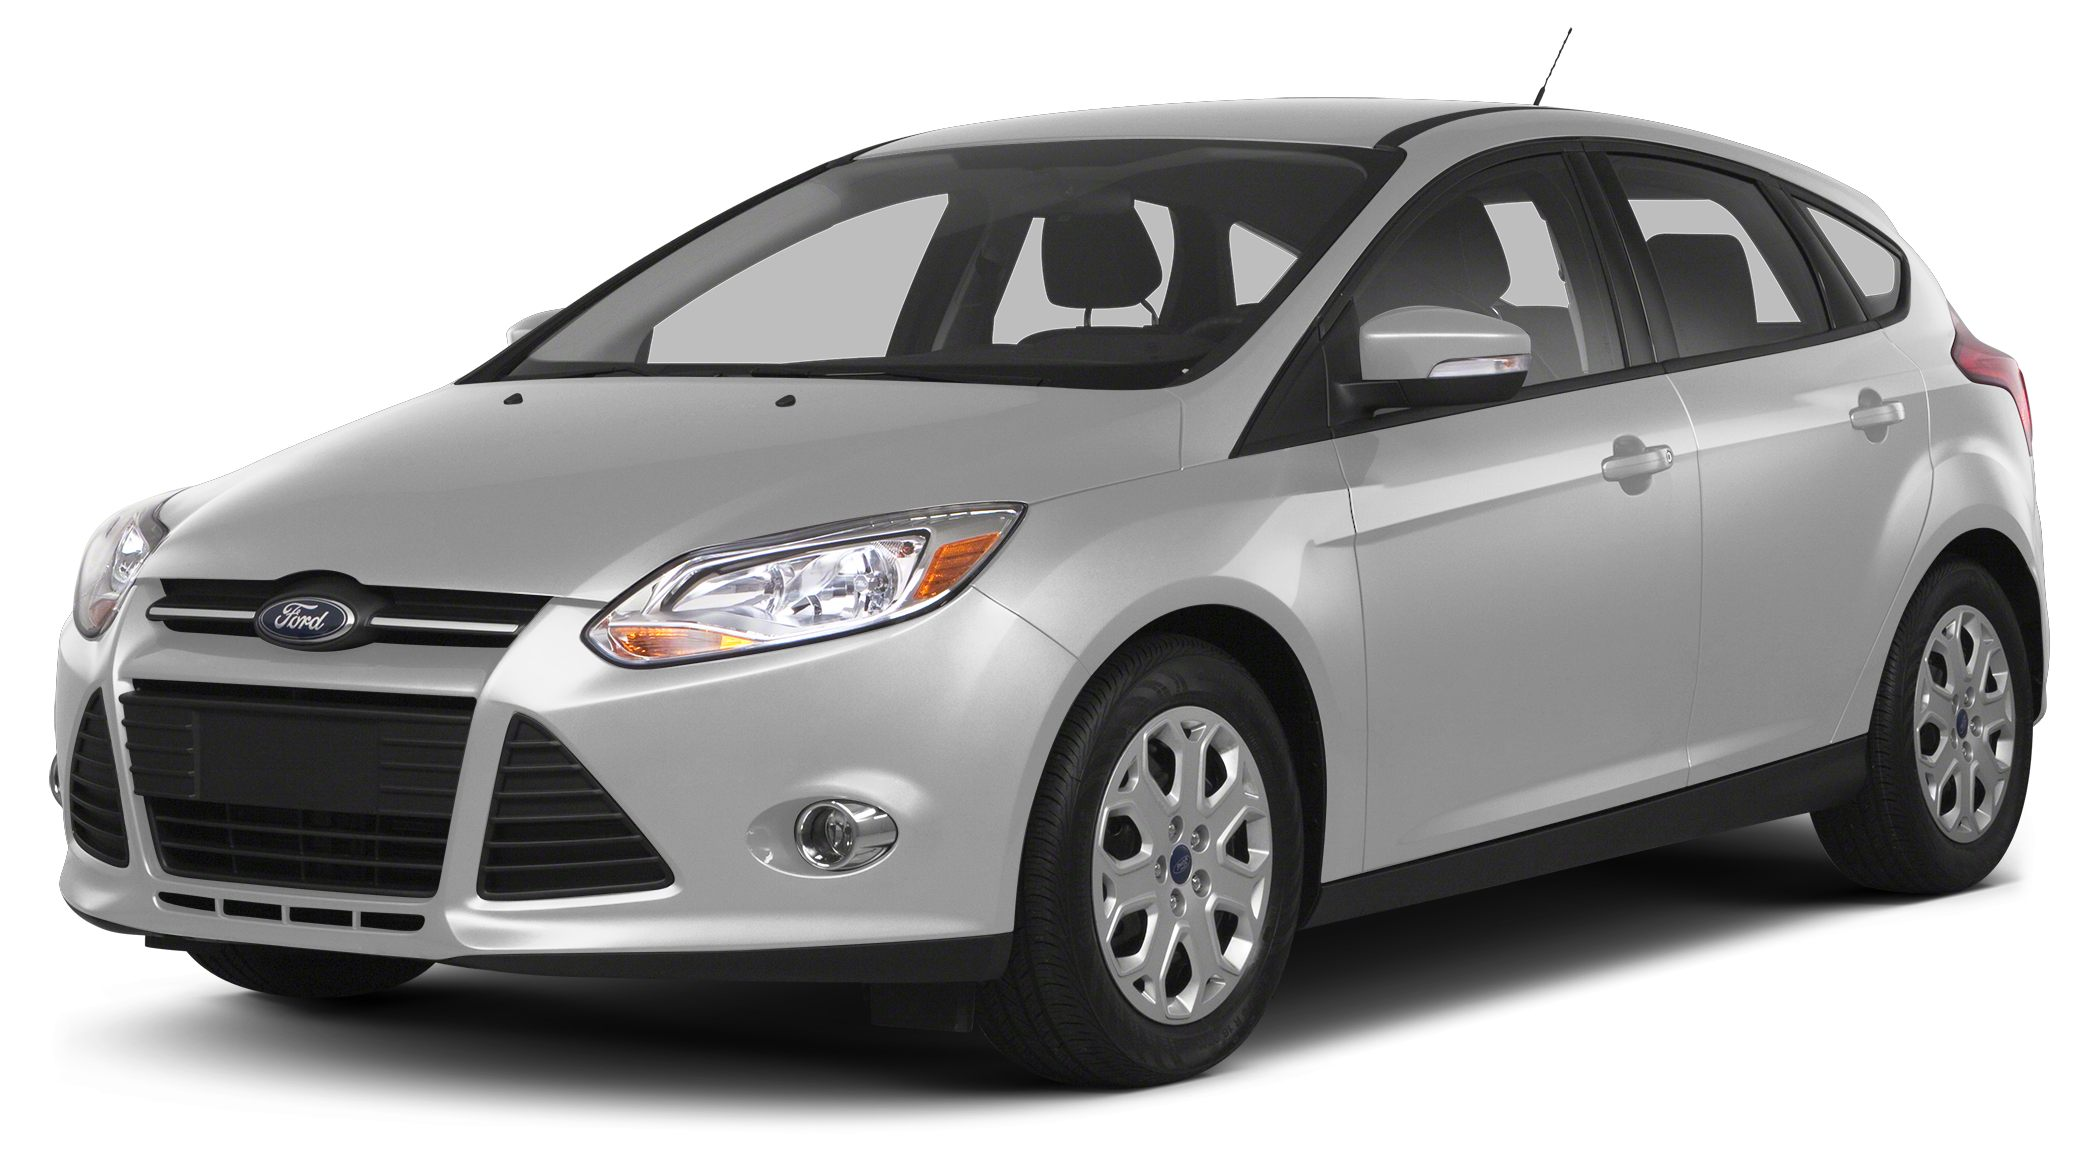 2013 Ford Focus SE Recent Arrival Clean CARFAX3626 HighwayCity MPGSilver 2013 Ford Focus S